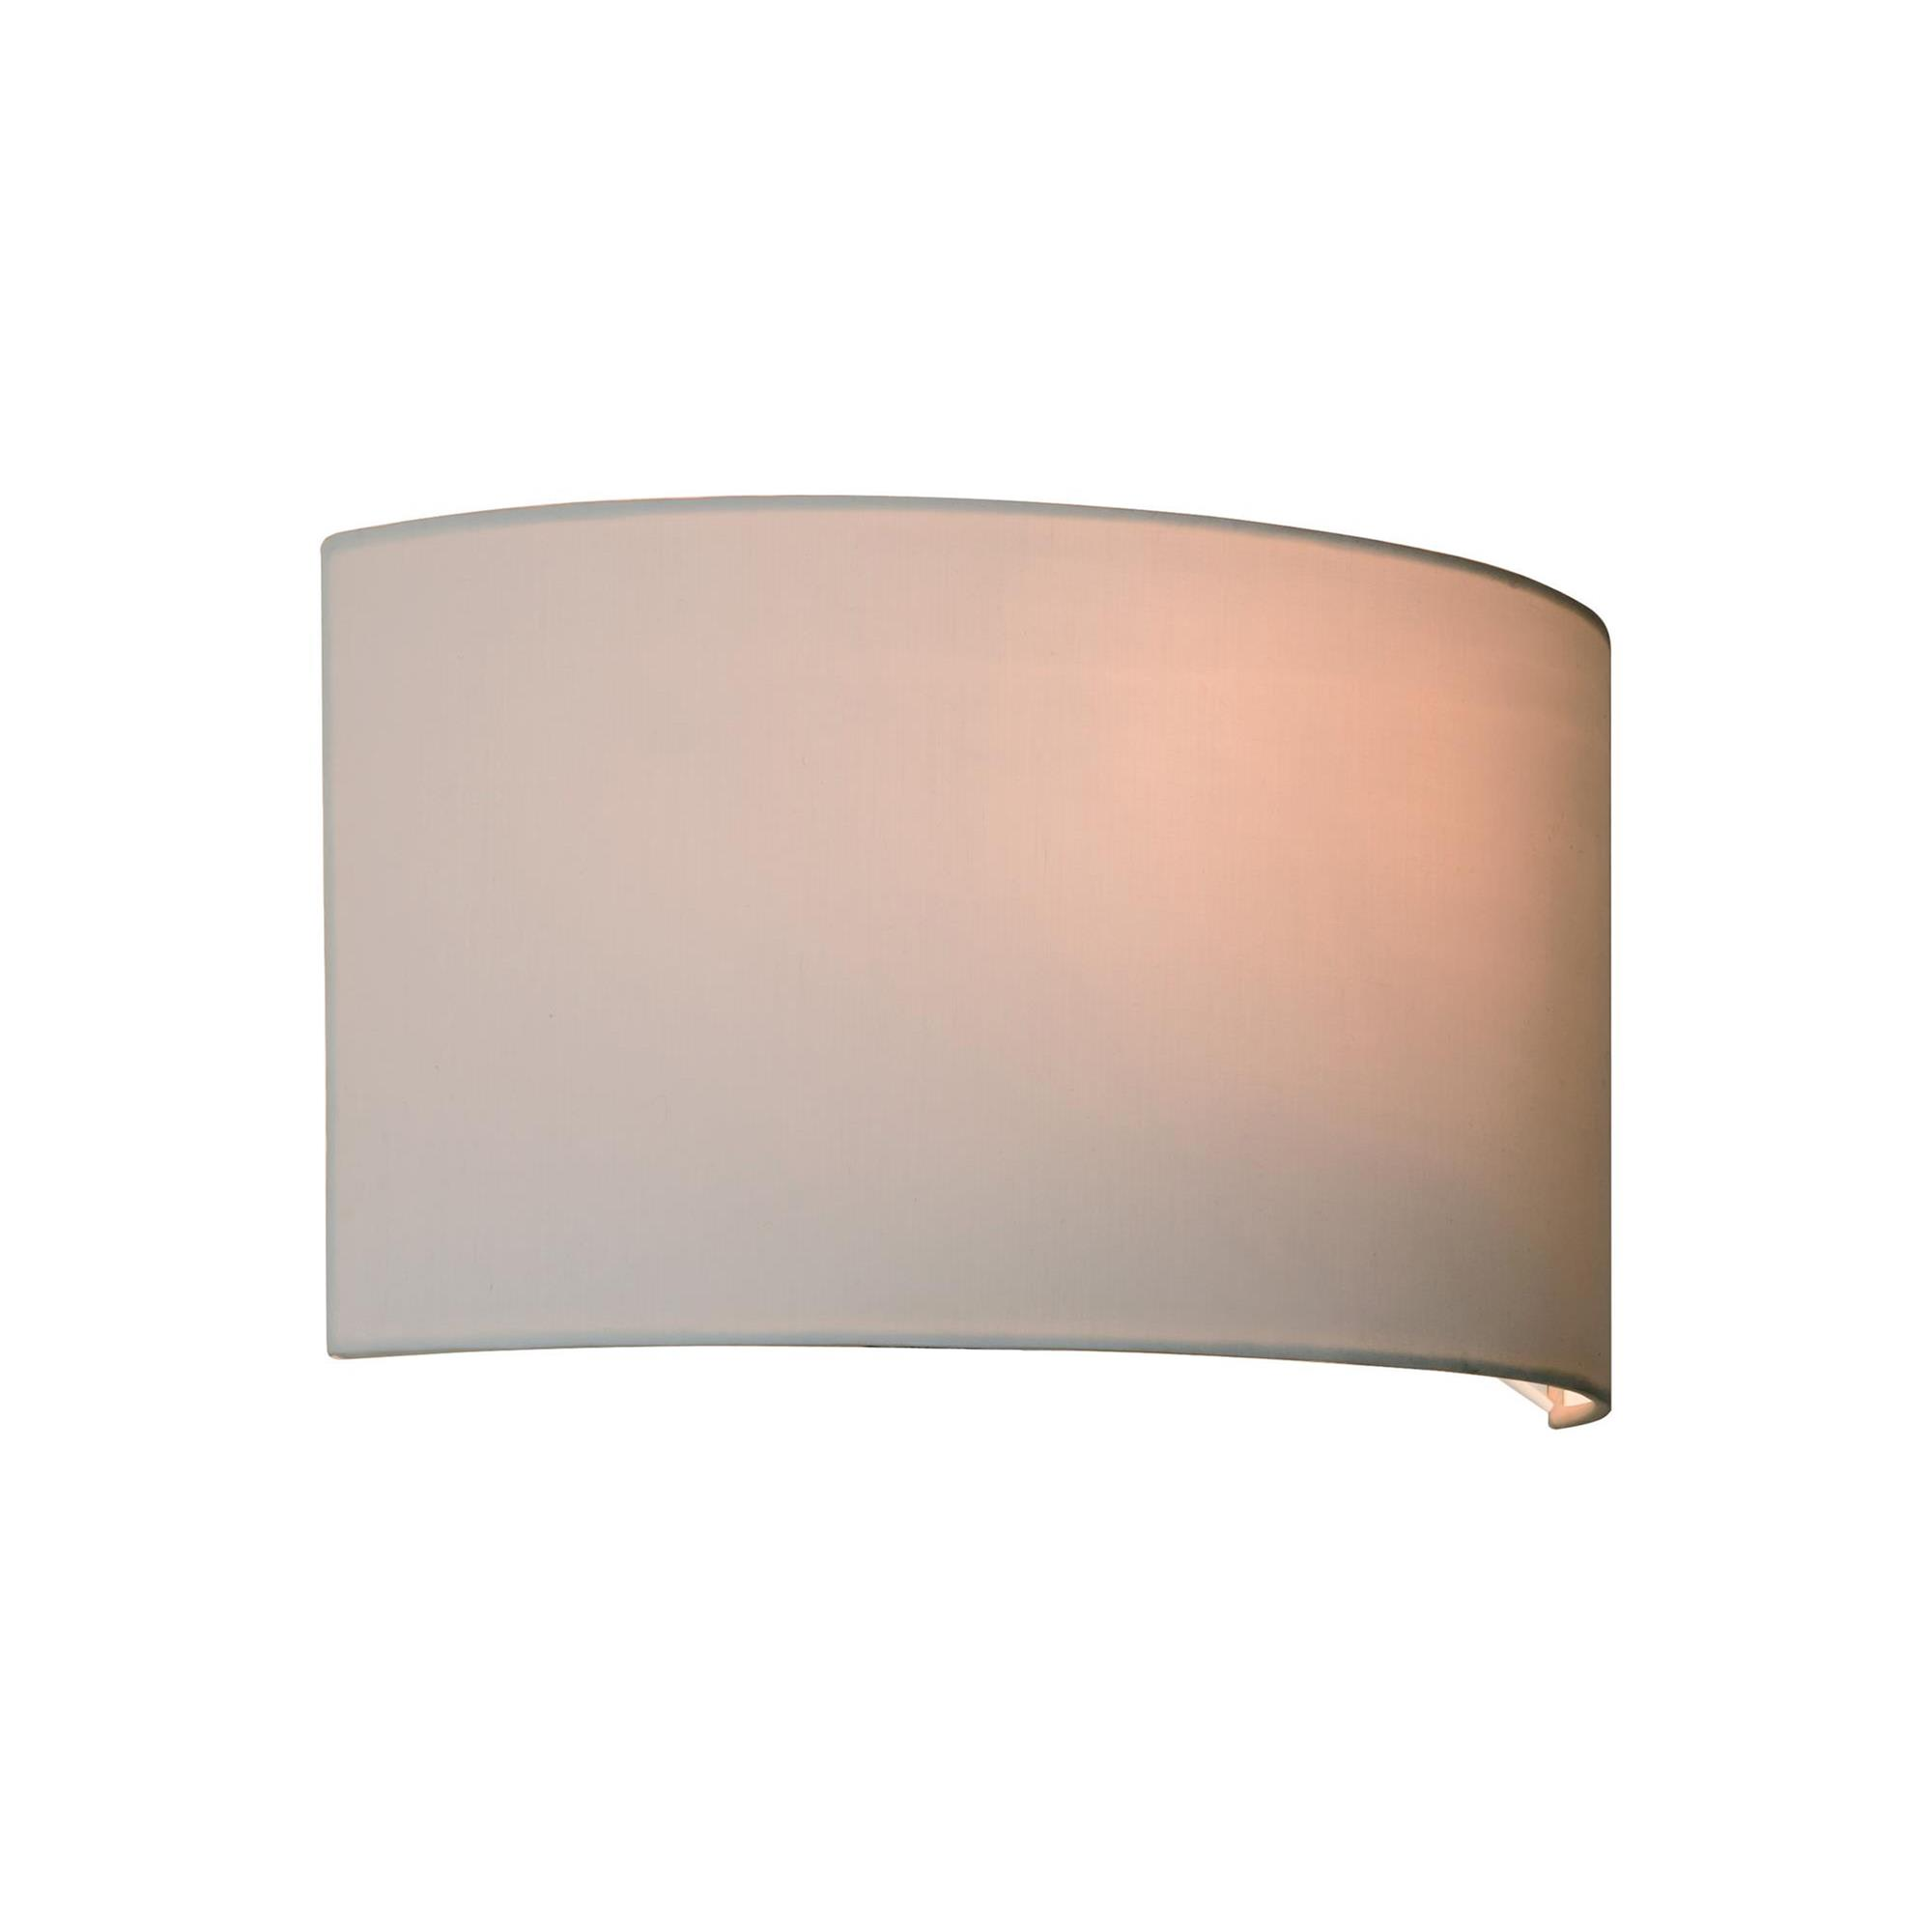 Wall Light Lamp Shades Fabric : Lima Bathroom Wall Light Shade Fabric Oyster Mr Resistor Lighting